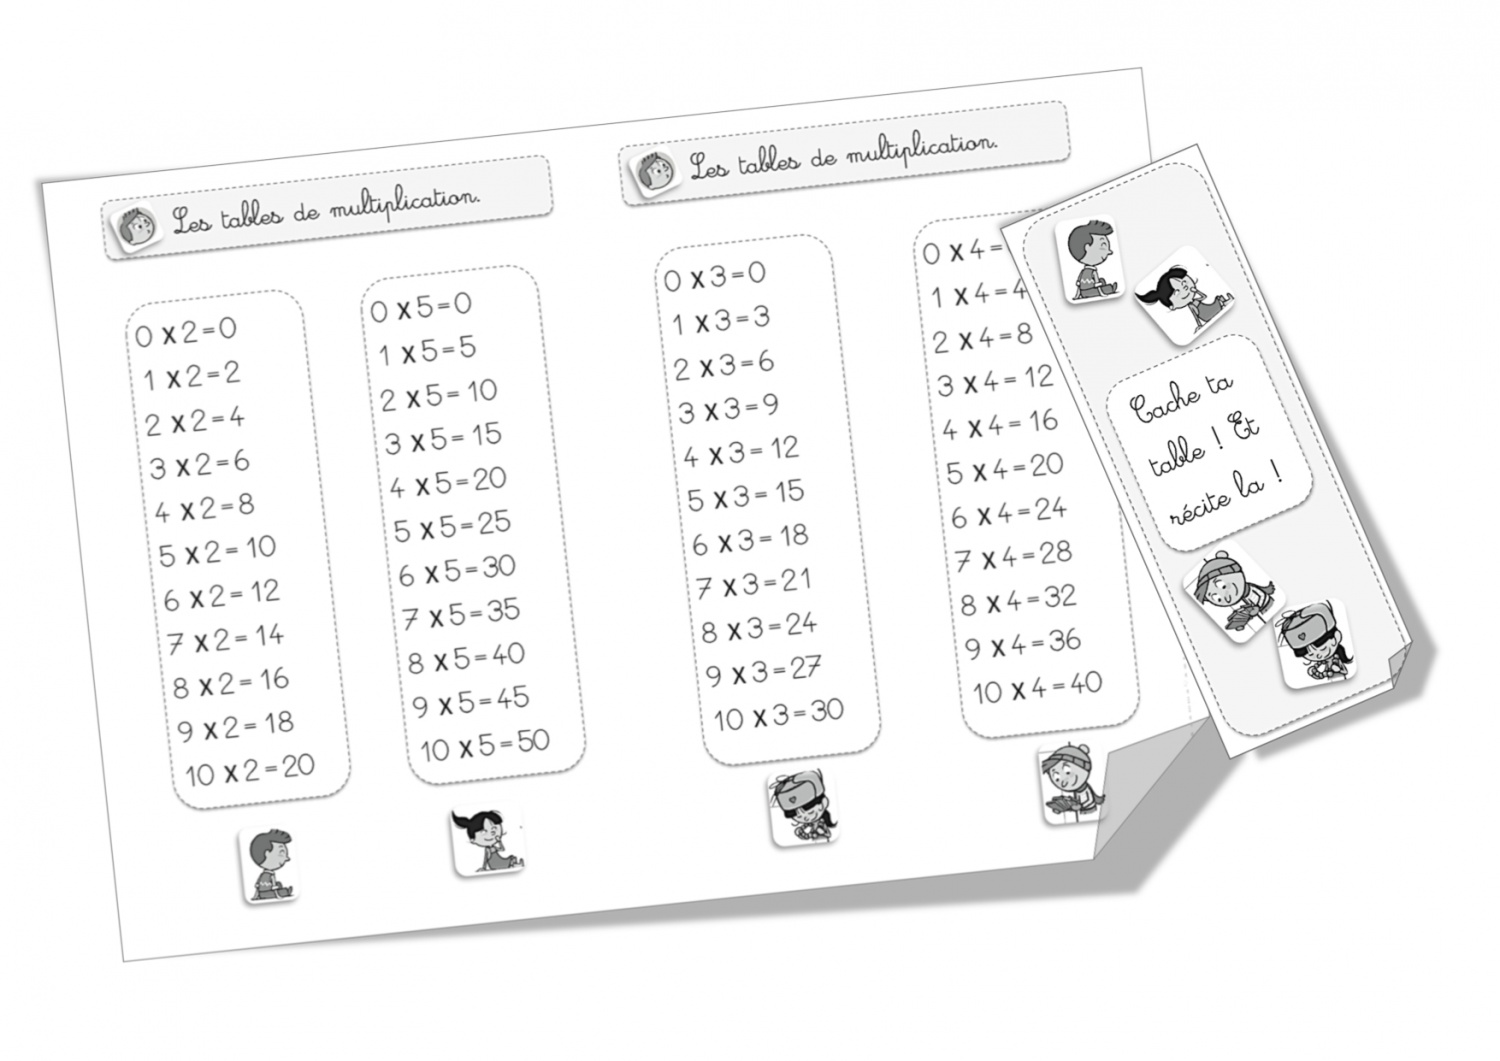 Table 6 Et 7 Exercice Table De Multiplication 2 3 4 5 Les Tables De